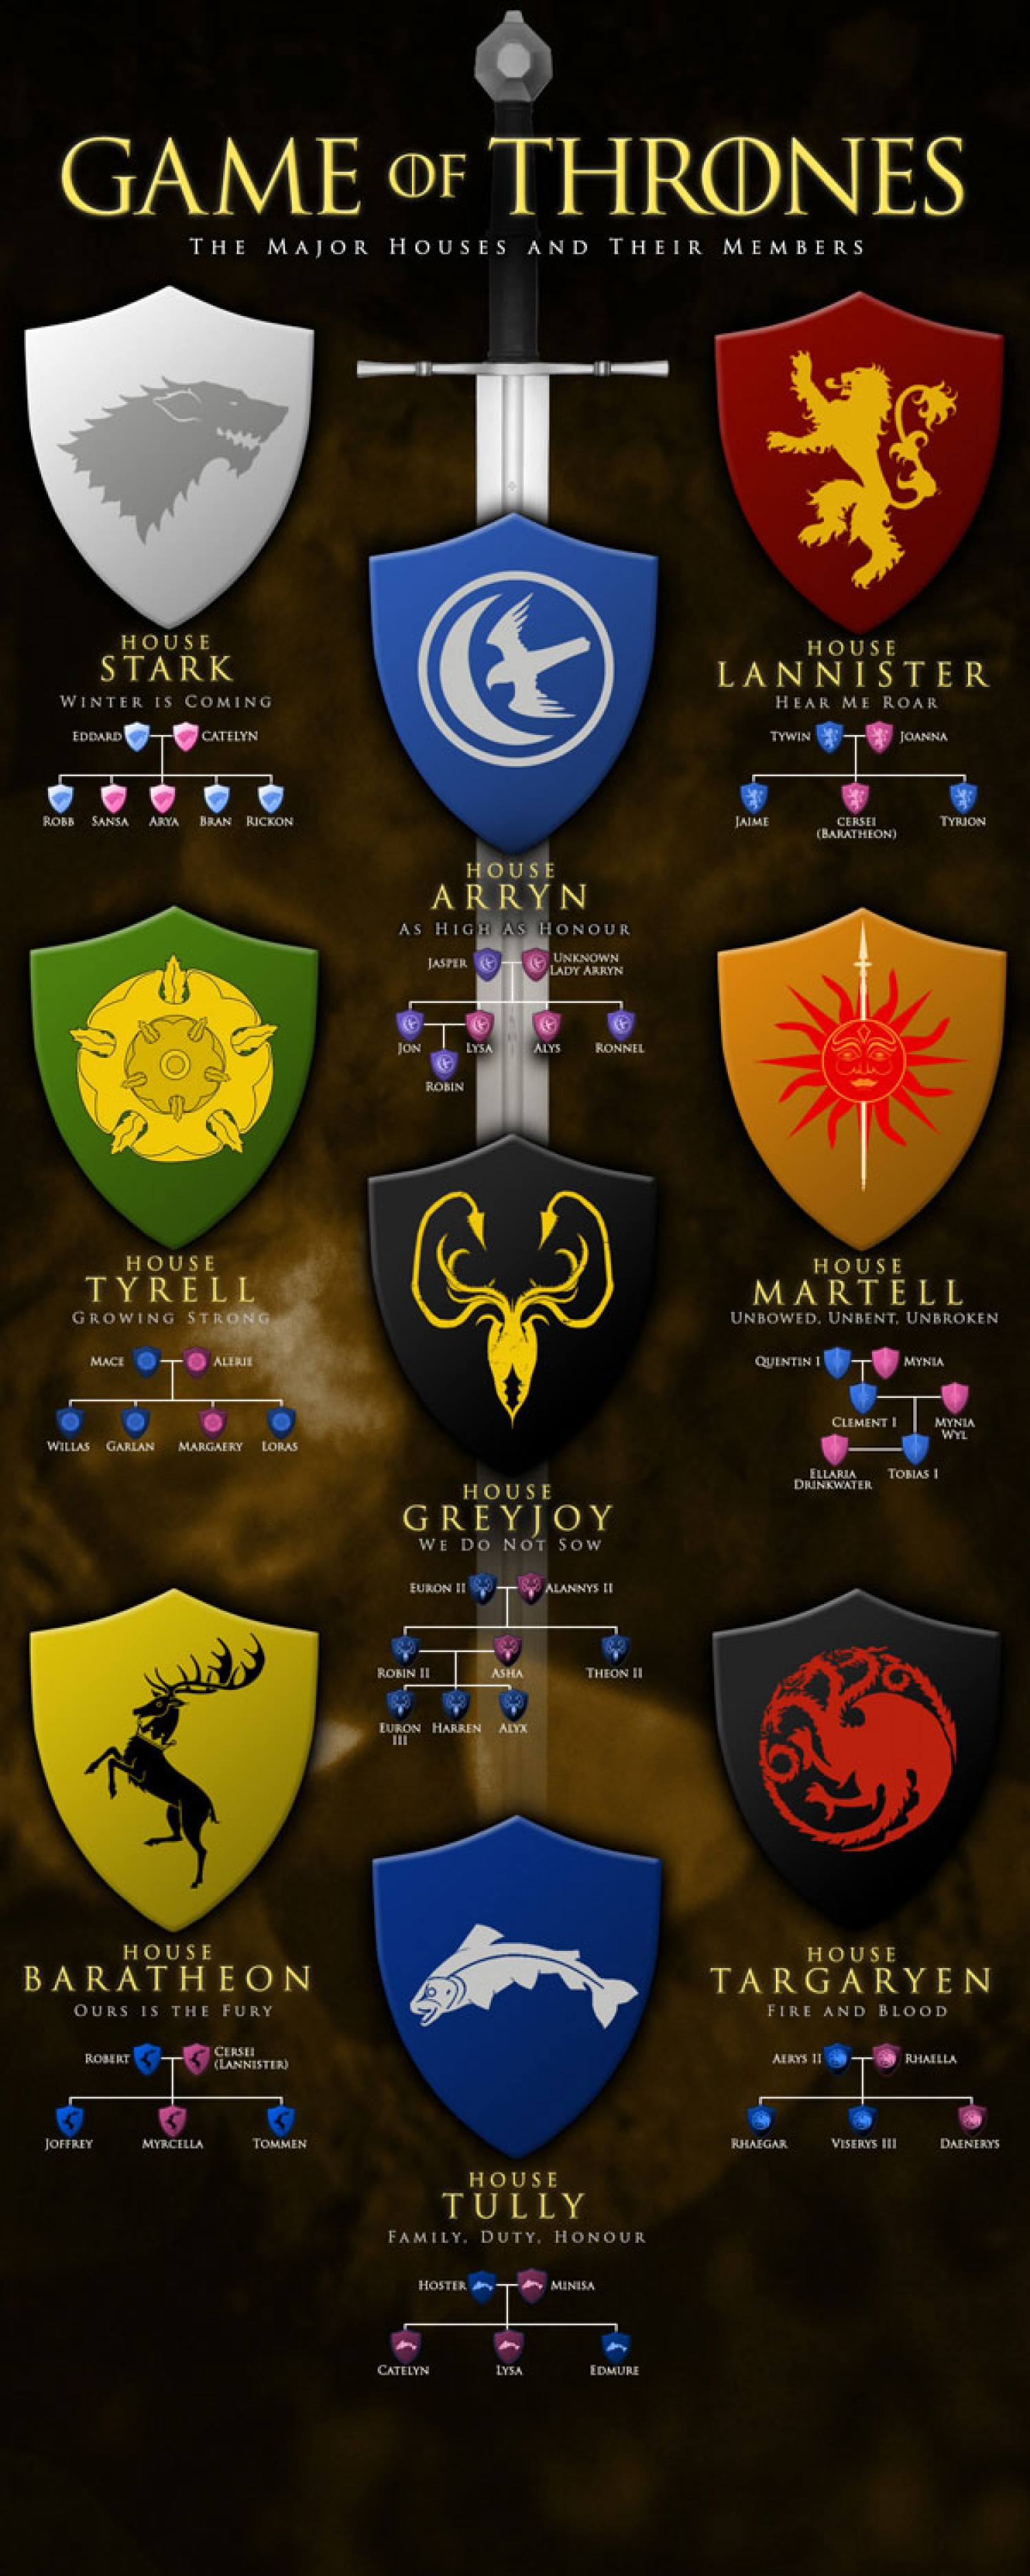 Game Of Thrones Houses Map : thrones, houses, Thrones, Major, Houses, Their, Members, Visual.ly